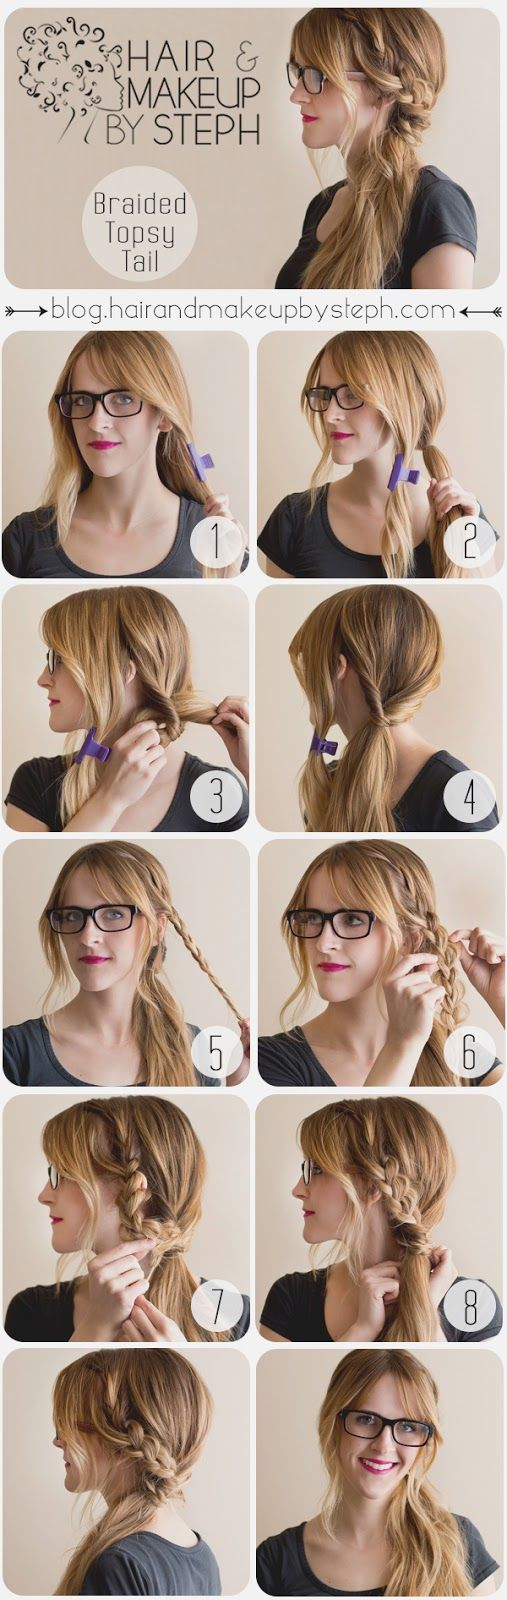 10 Hair Tutorials for You to Shine Everyday - Pretty Designs